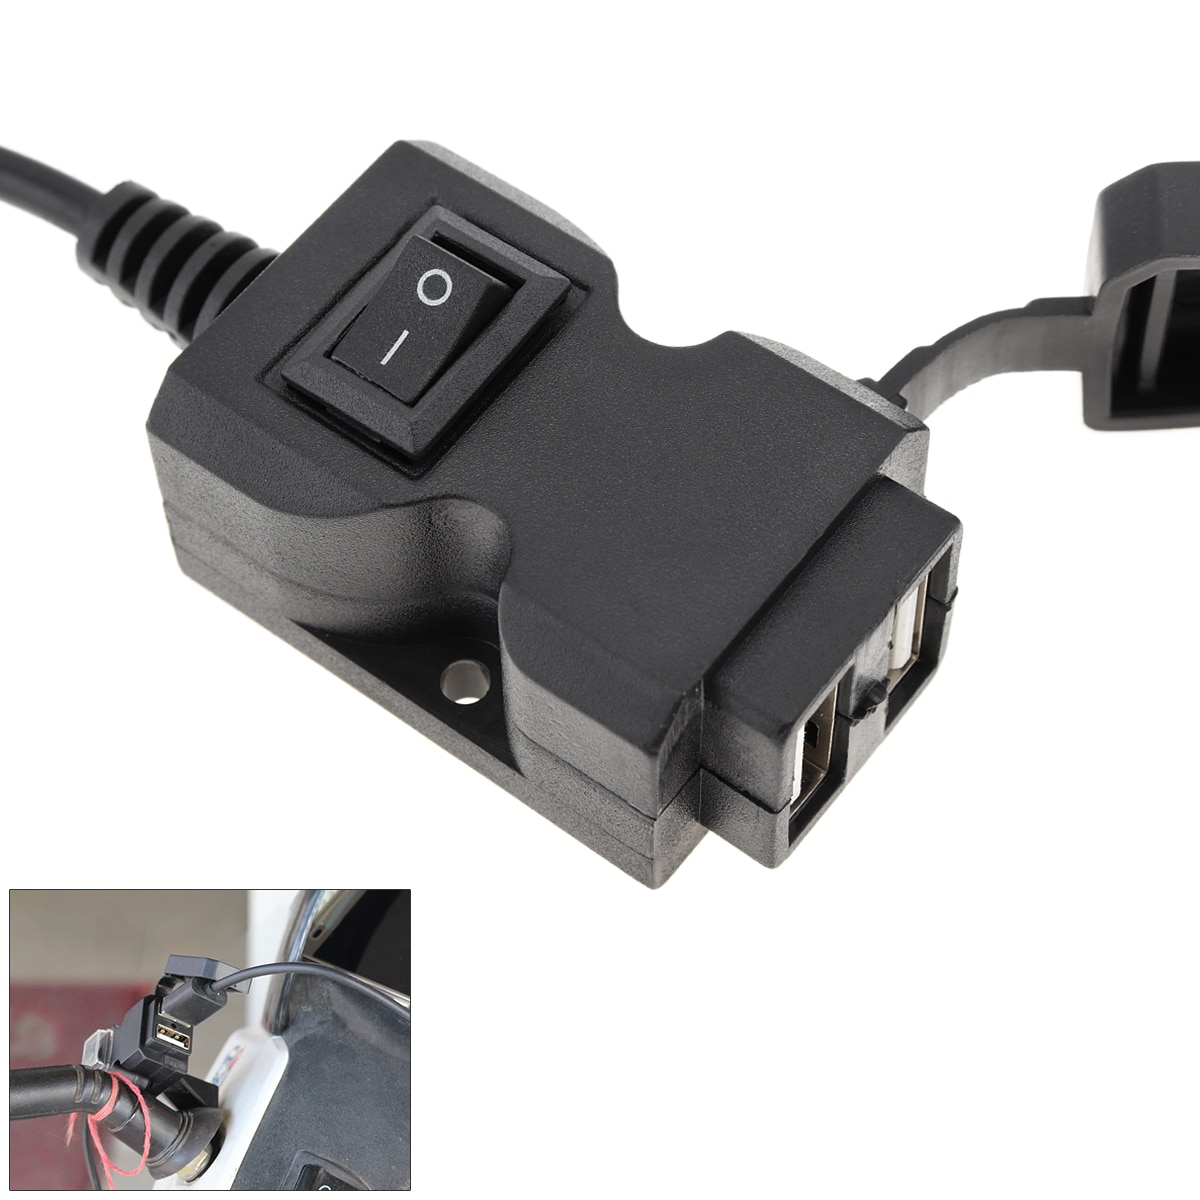 hot sale mean well add 155b meanwell add 155 152 75w dual output with battery charger usp function power supply Dual USB Port 12V Waterproof Motorbike Motorcycle Handlebar Charger 5V 1A/2.1A Adapter Power Supply Socket for  Mobile Hot Sale